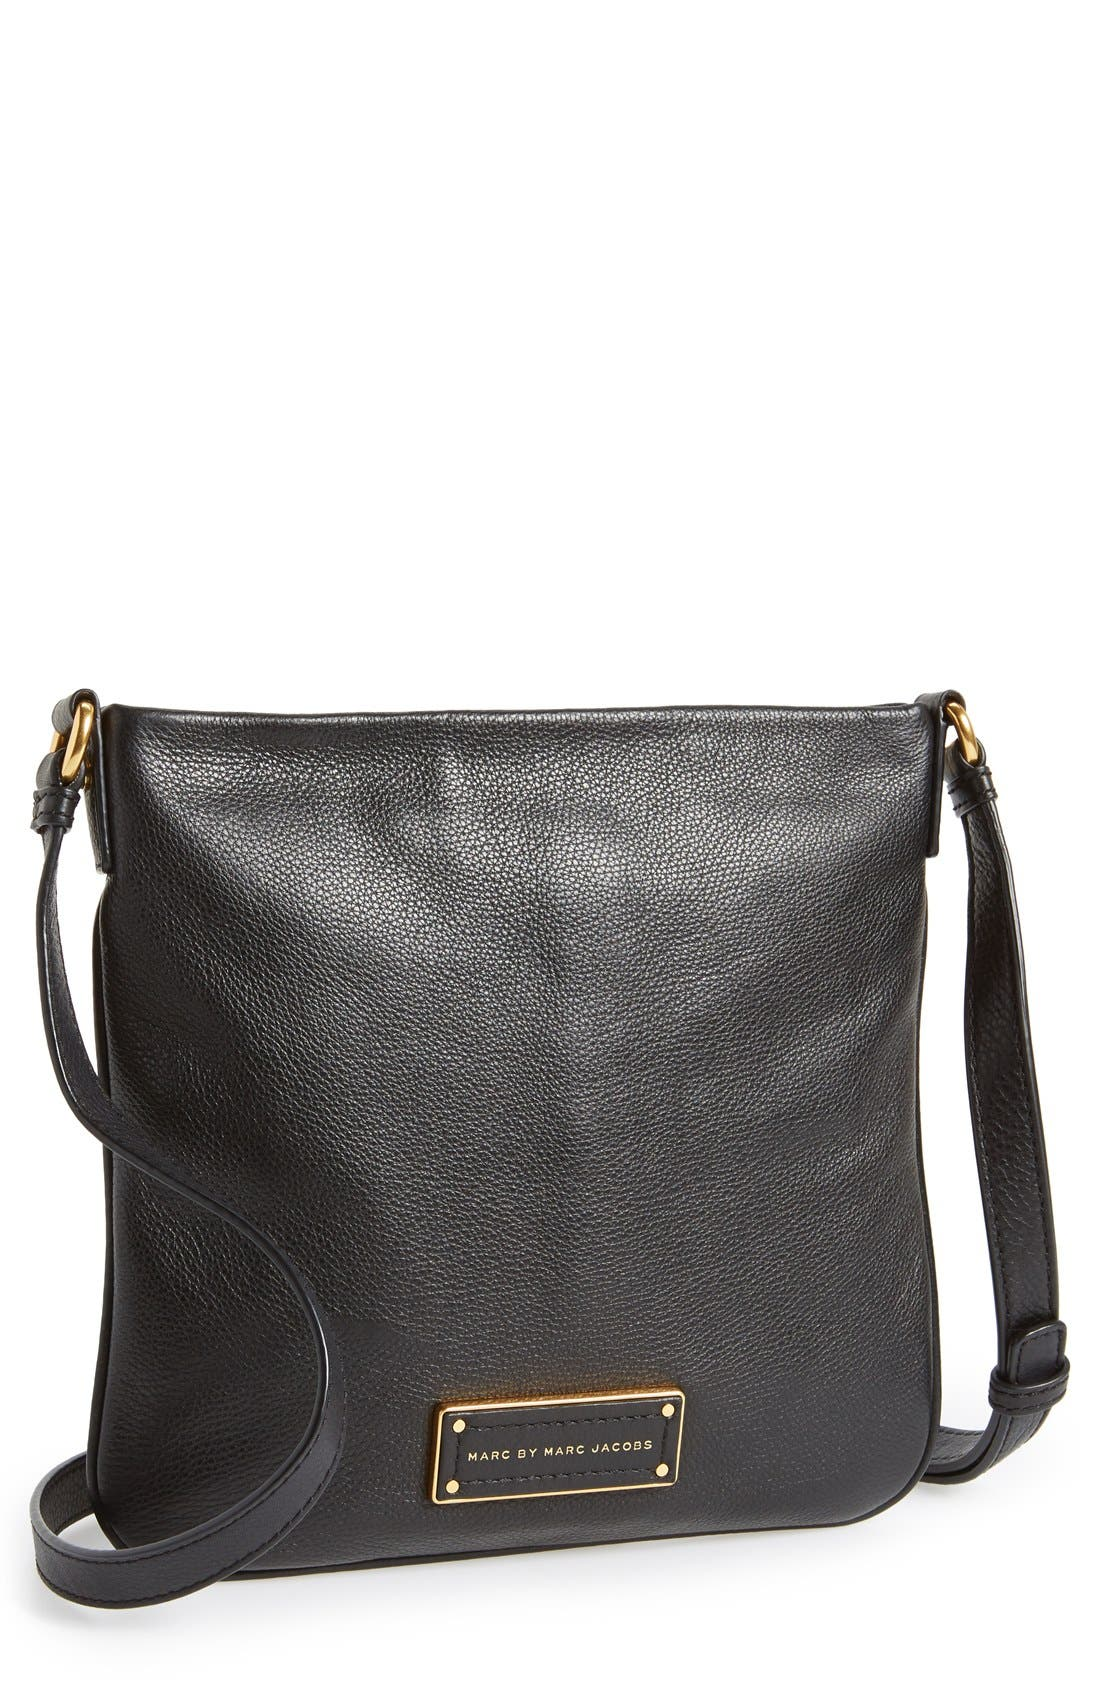 MARC JACOBS MARC BY MARC JACOBS 'Too Hot to Handle - Sia' Crossbody Bag, Main, color, 001